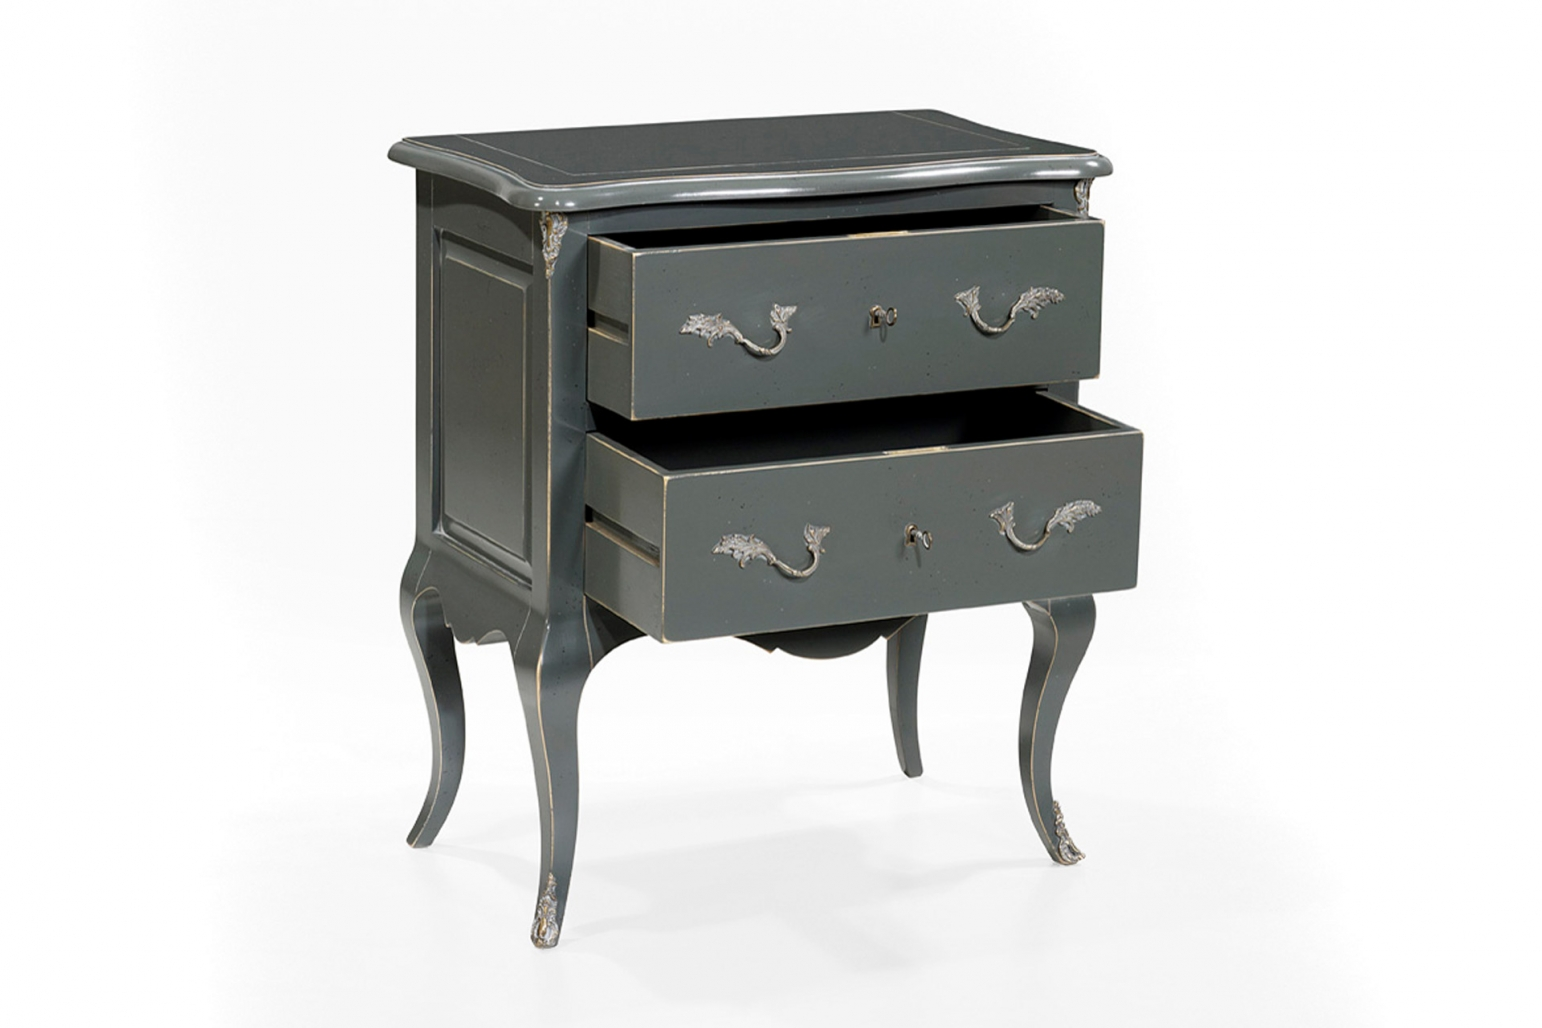 Antique Bedside Tables Bedside Table In Antique Grey Bedside Tables